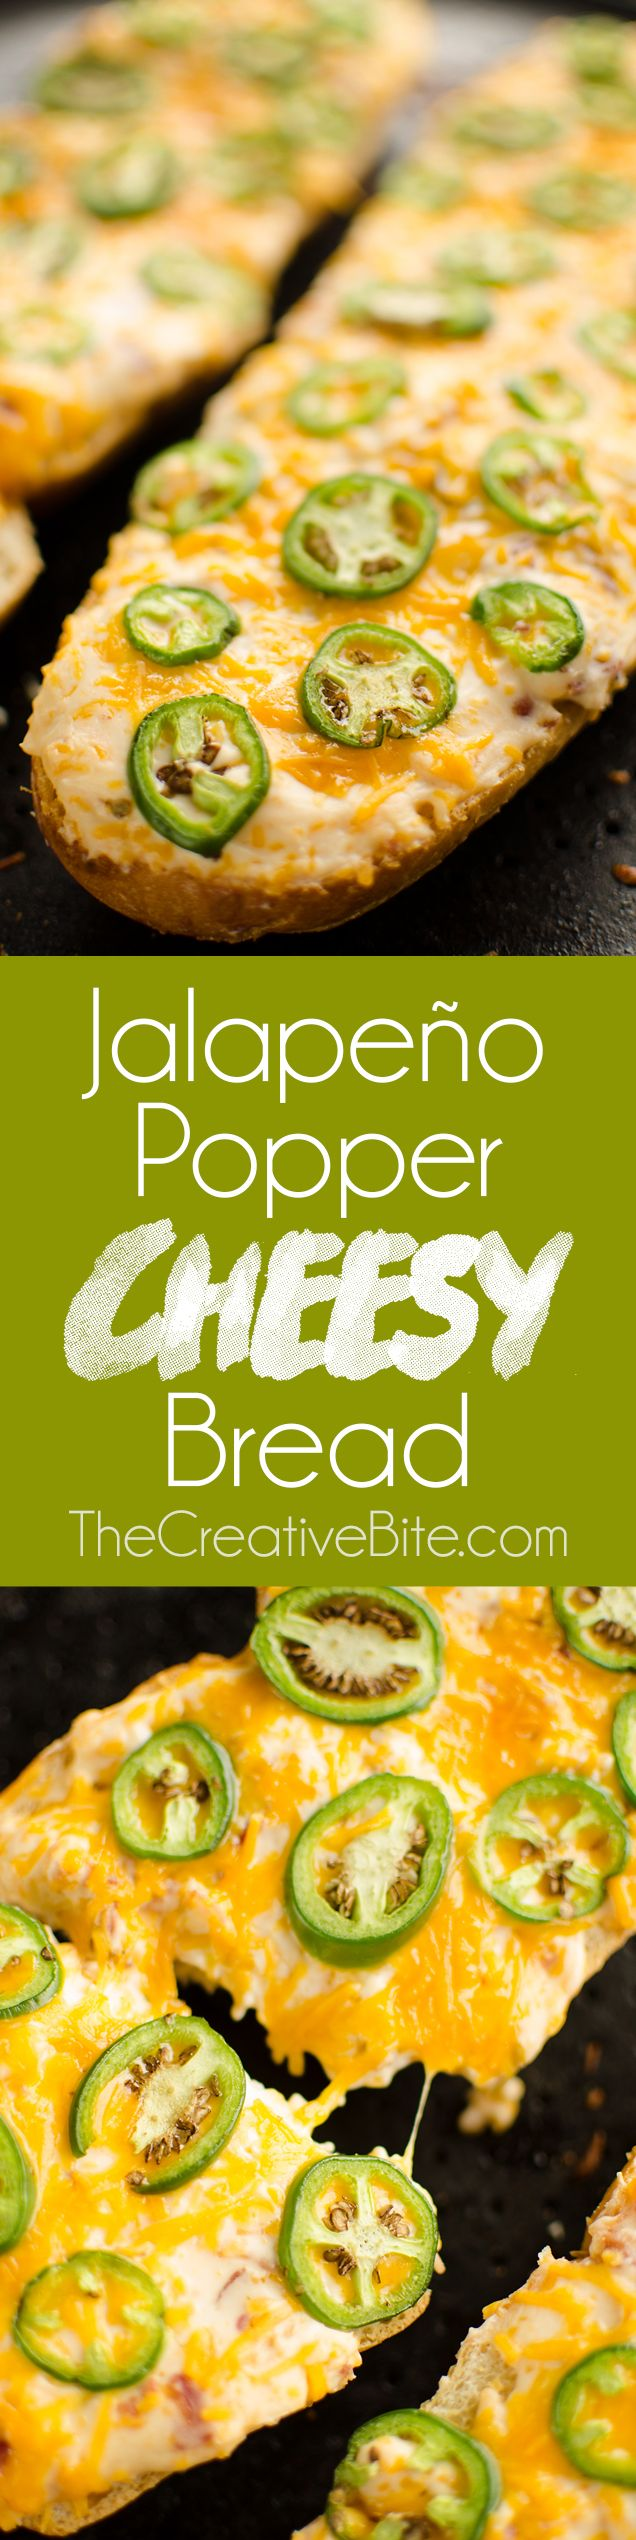 Jalapeño Popper Cheesy Bread takes all the great flavors of Jalapeño Poppers, including bacon and cream cheese, and combines them into one easy to make appetizer.